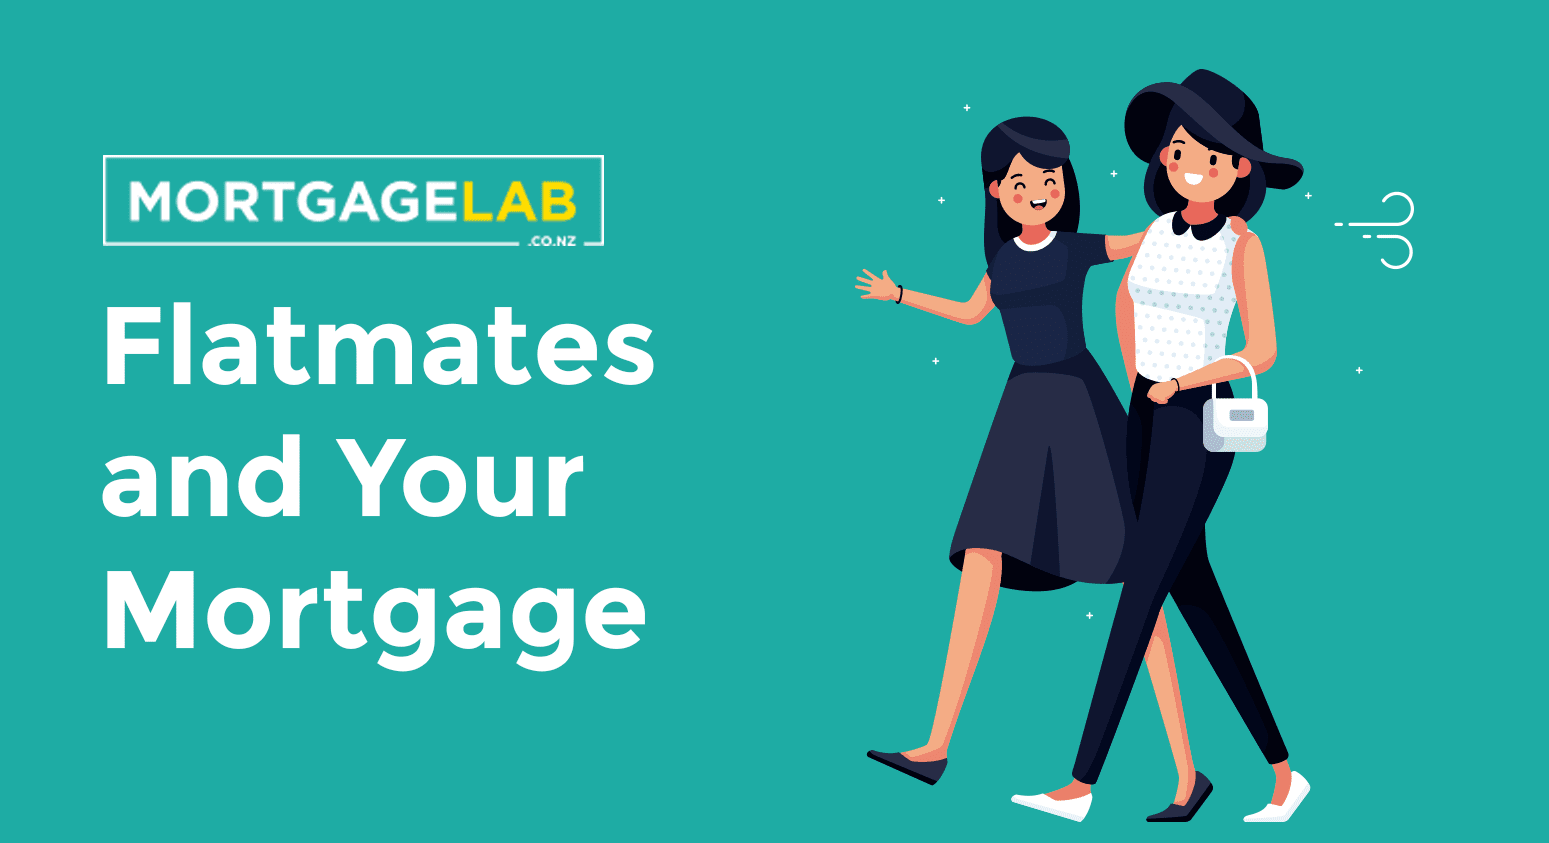 Flatmates and your mortgage